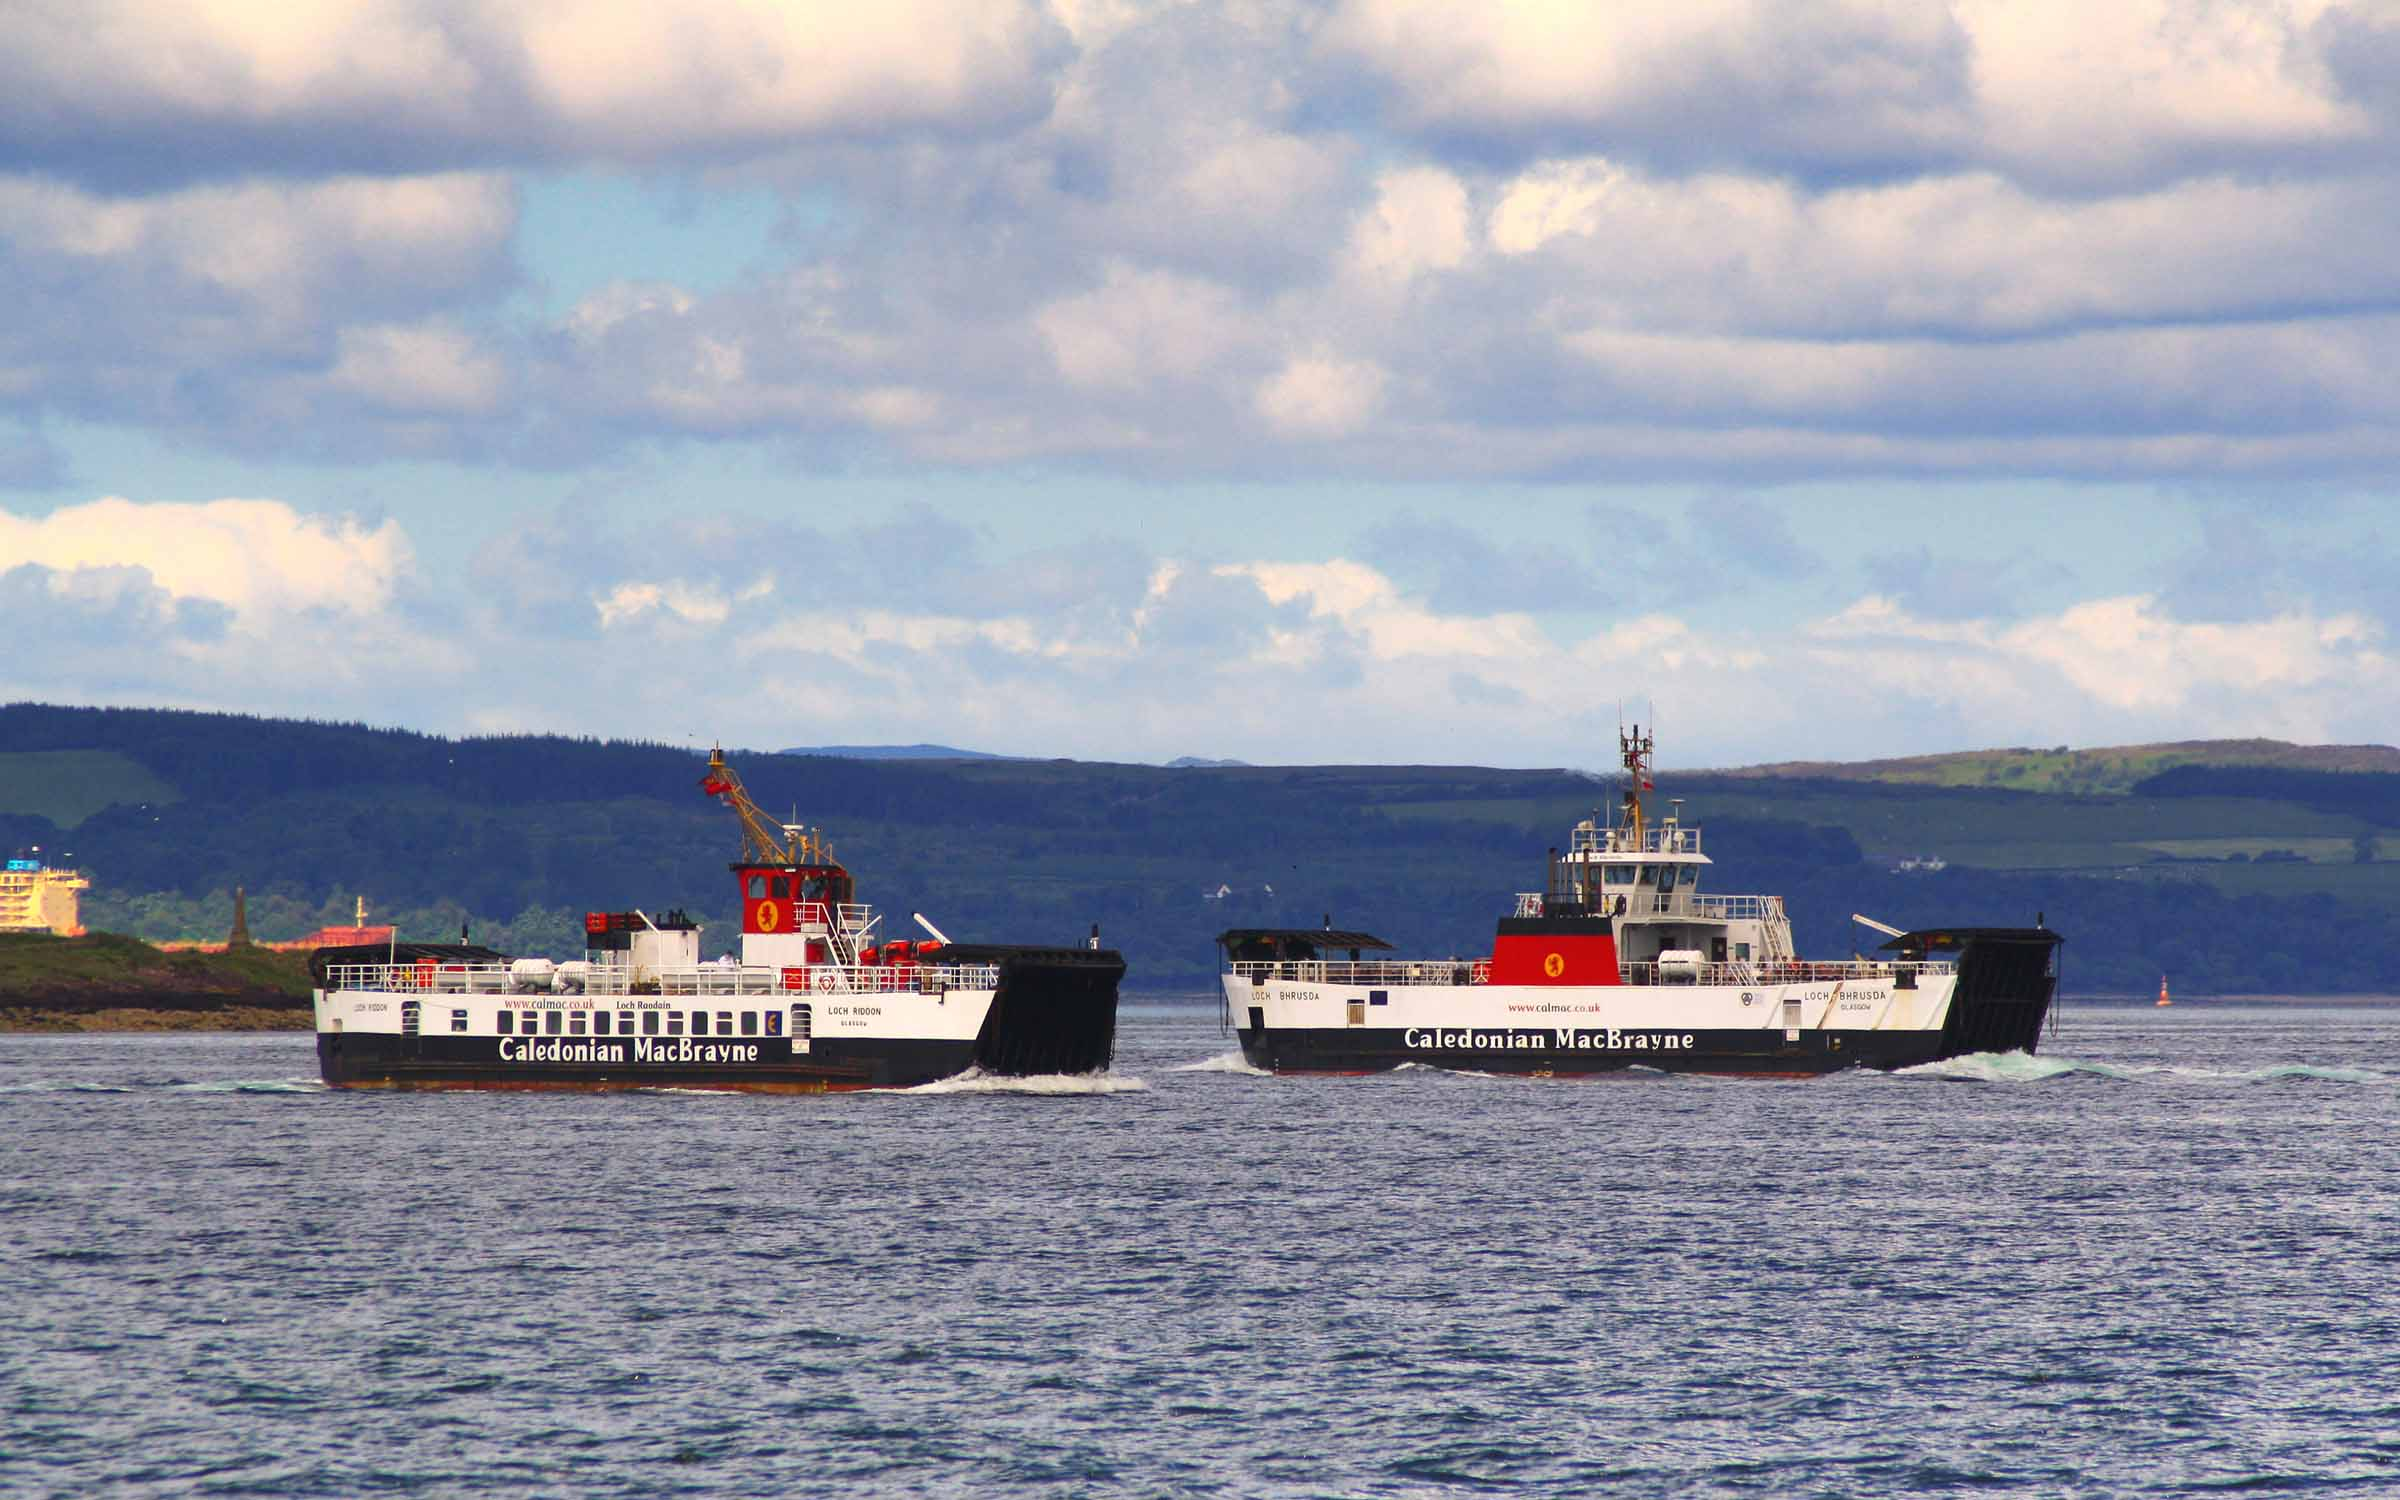 Loch Riddon passing Loch Alainn off Largs (Ships of CalMac)